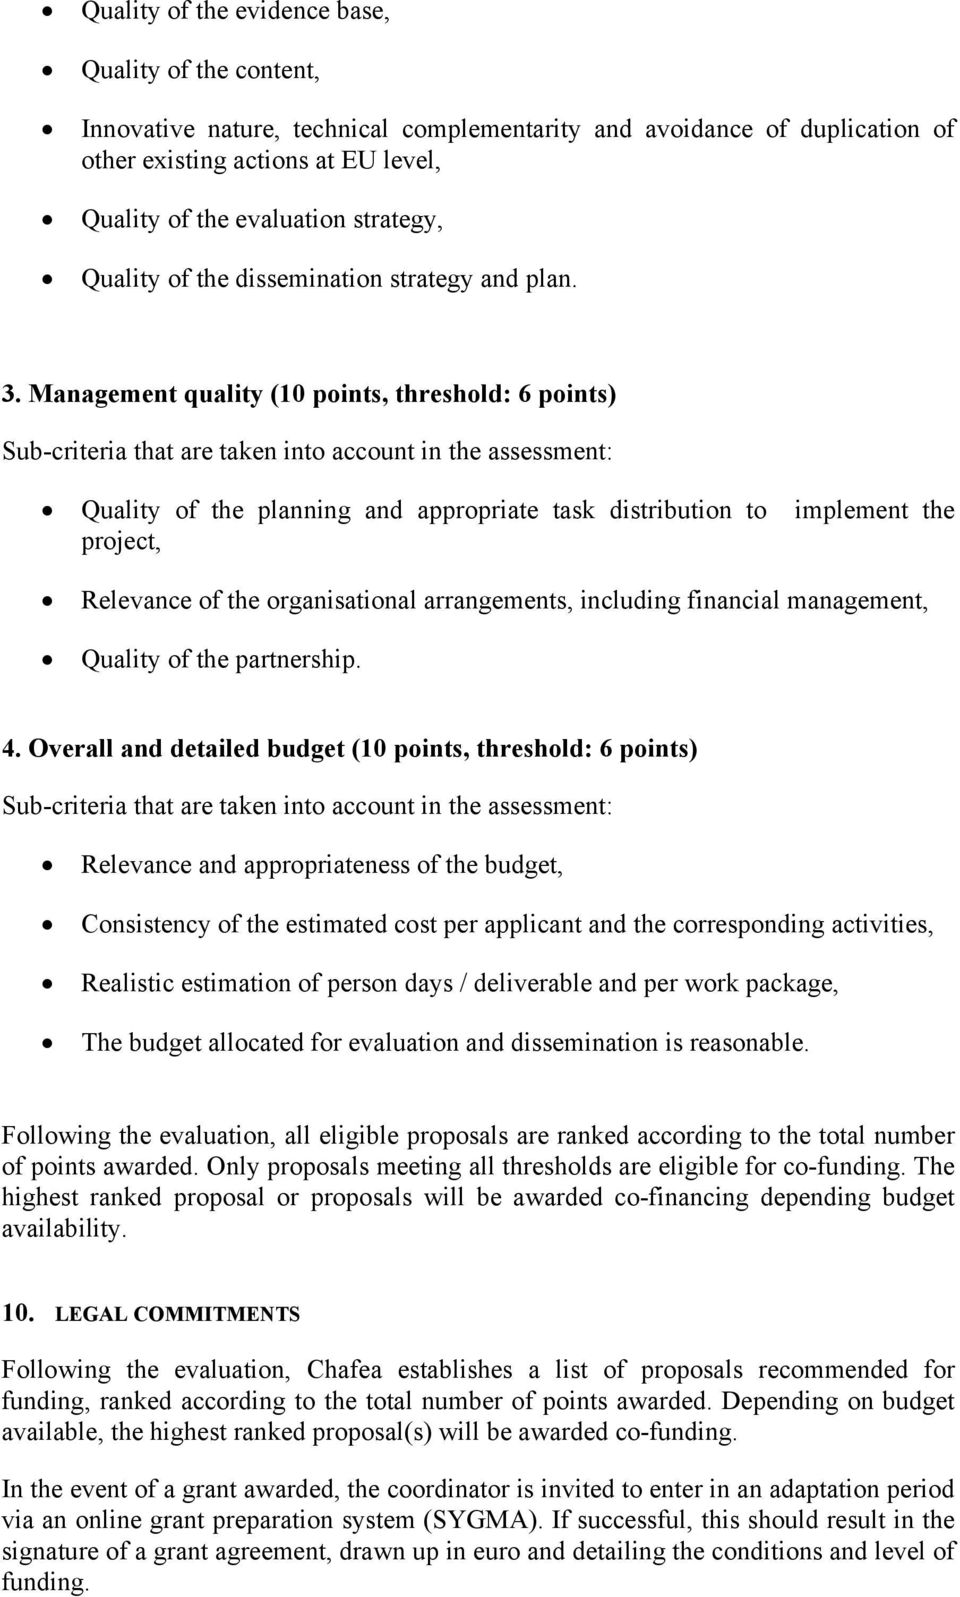 Management quality (10 points, threshold: 6 points) Sub-criteria that are taken into account in the assessment: Quality of the planning and appropriate task distribution to implement the project,